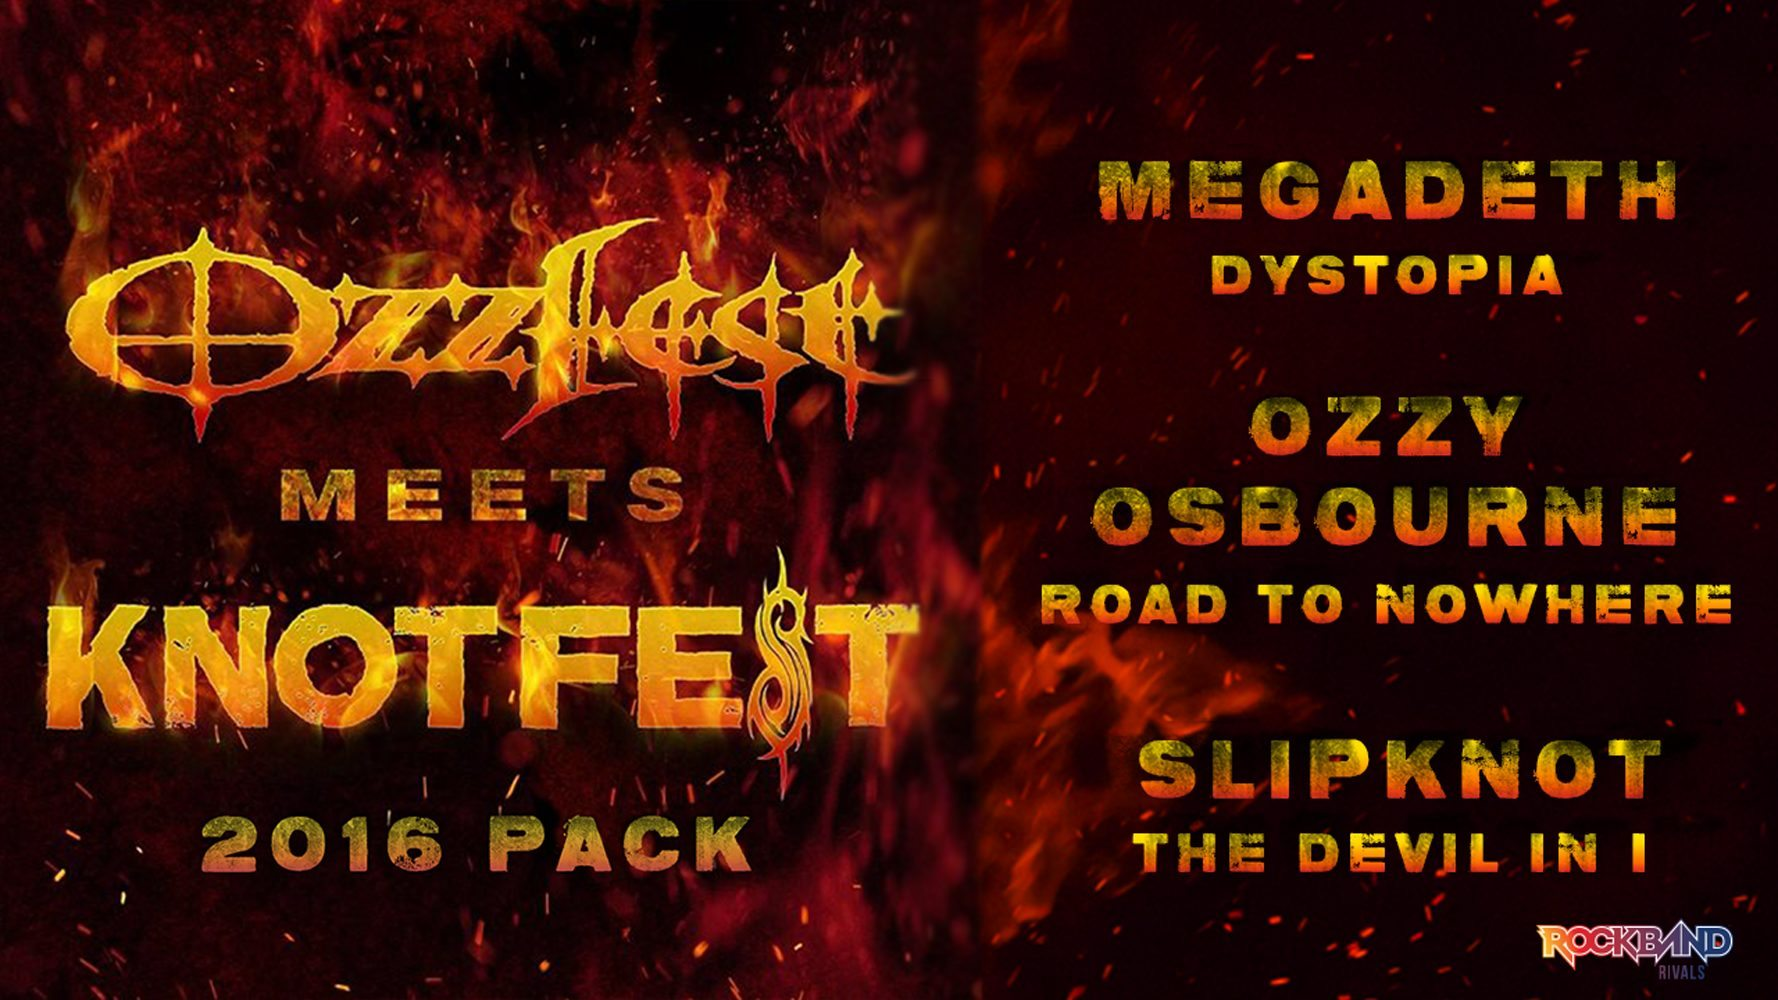 Rock Band 4 New DLC Pack Celebrating Ozzfest Meets Knotfest Sep. 20